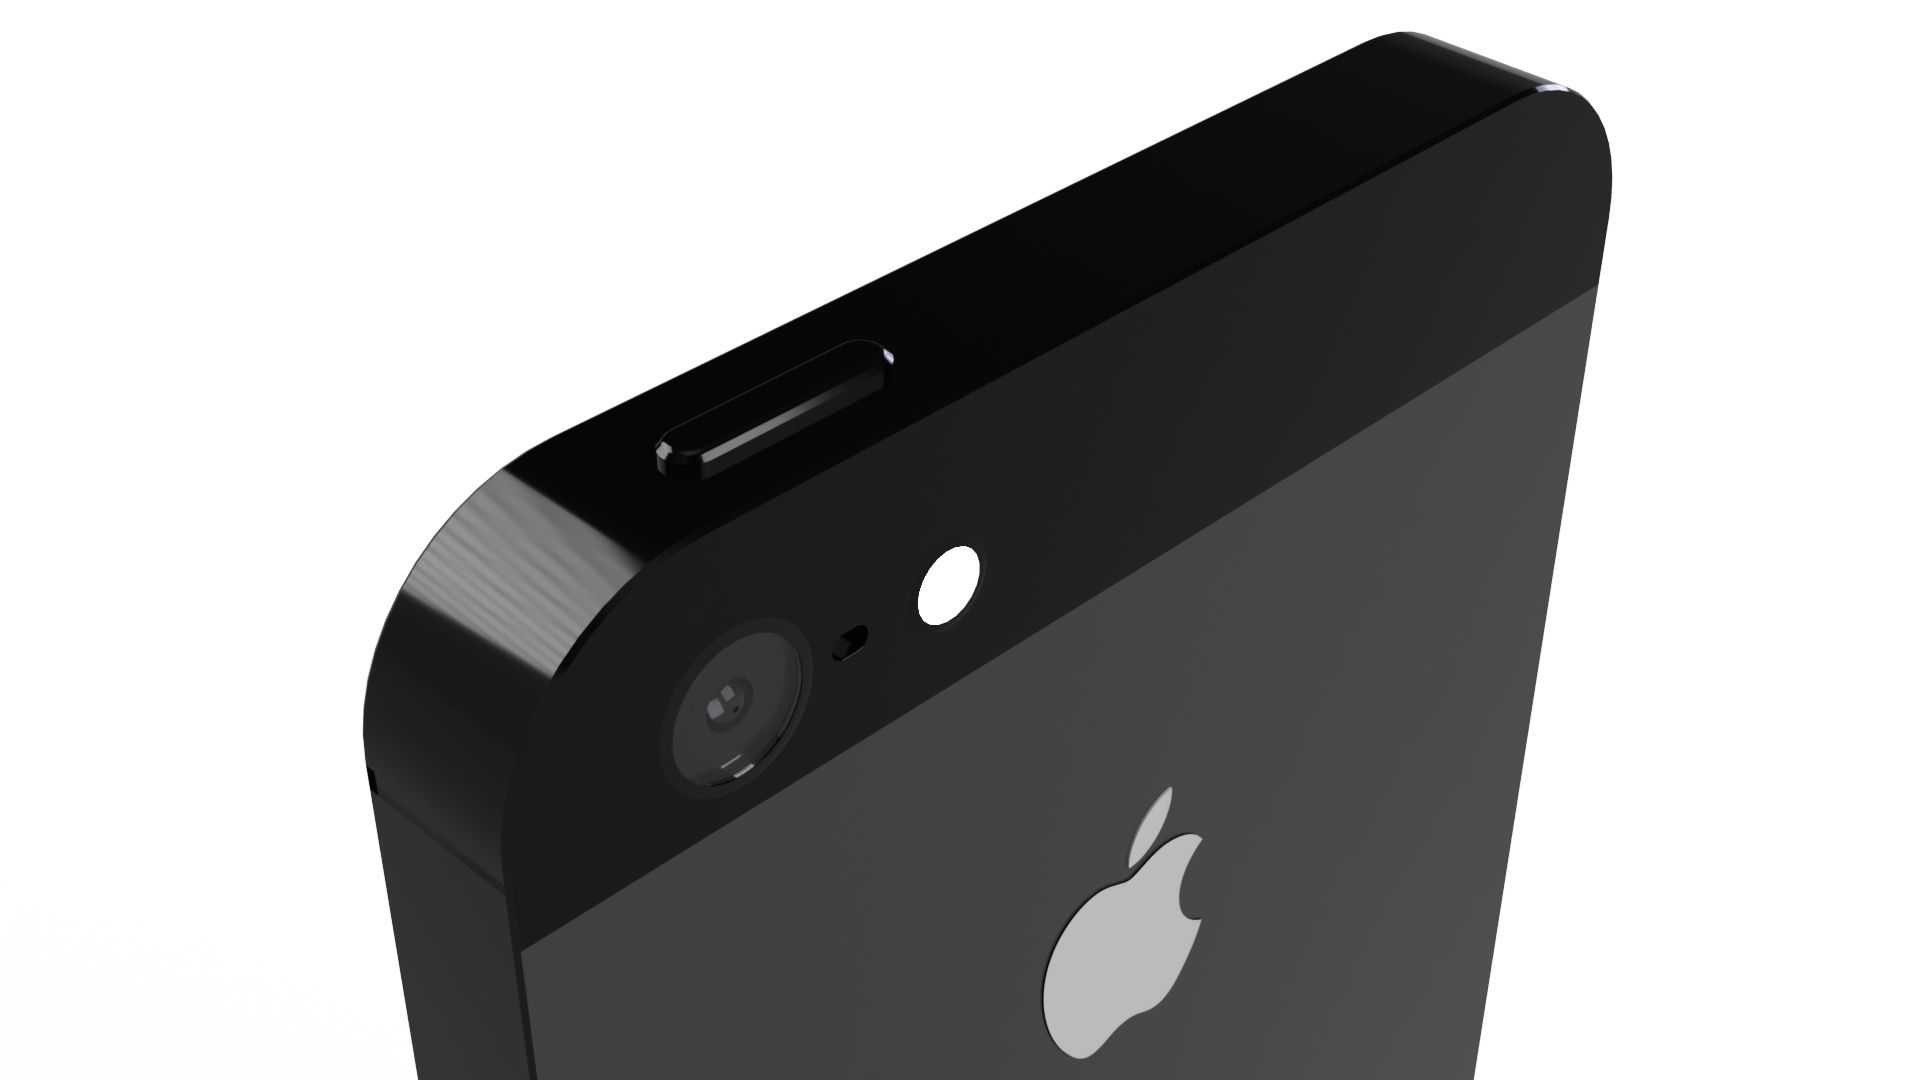 Iphone-55s-2017-nov-05-03-51-20pm-000-customizedview2242084613-png-3500-3500